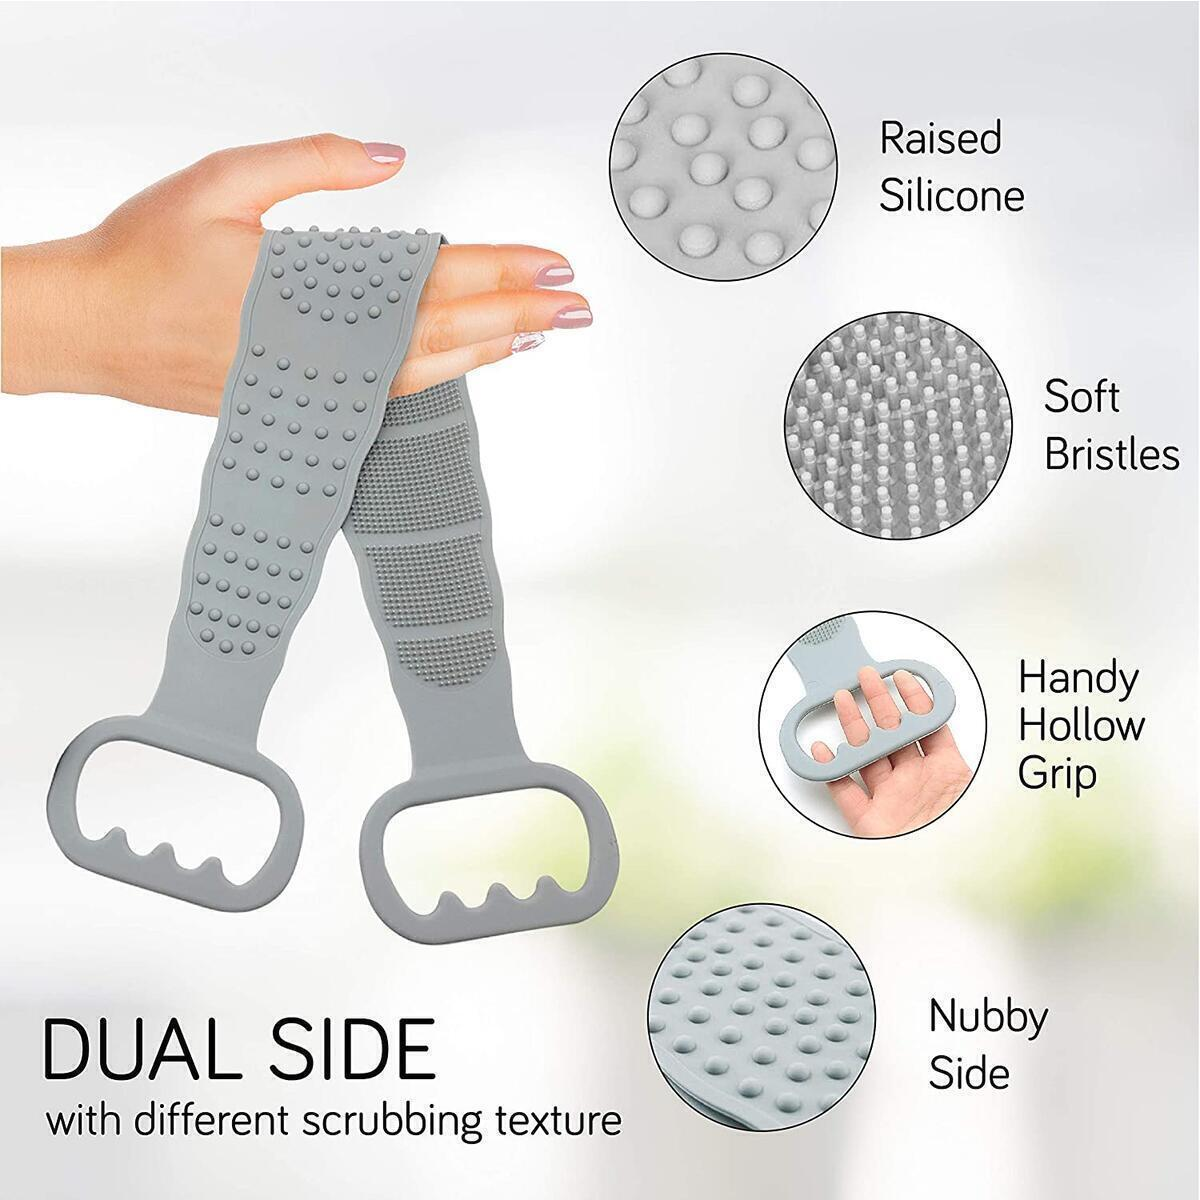 Silicone Body Back Scrubber Exfoliating Texture for shower and Bath Body Brush.…